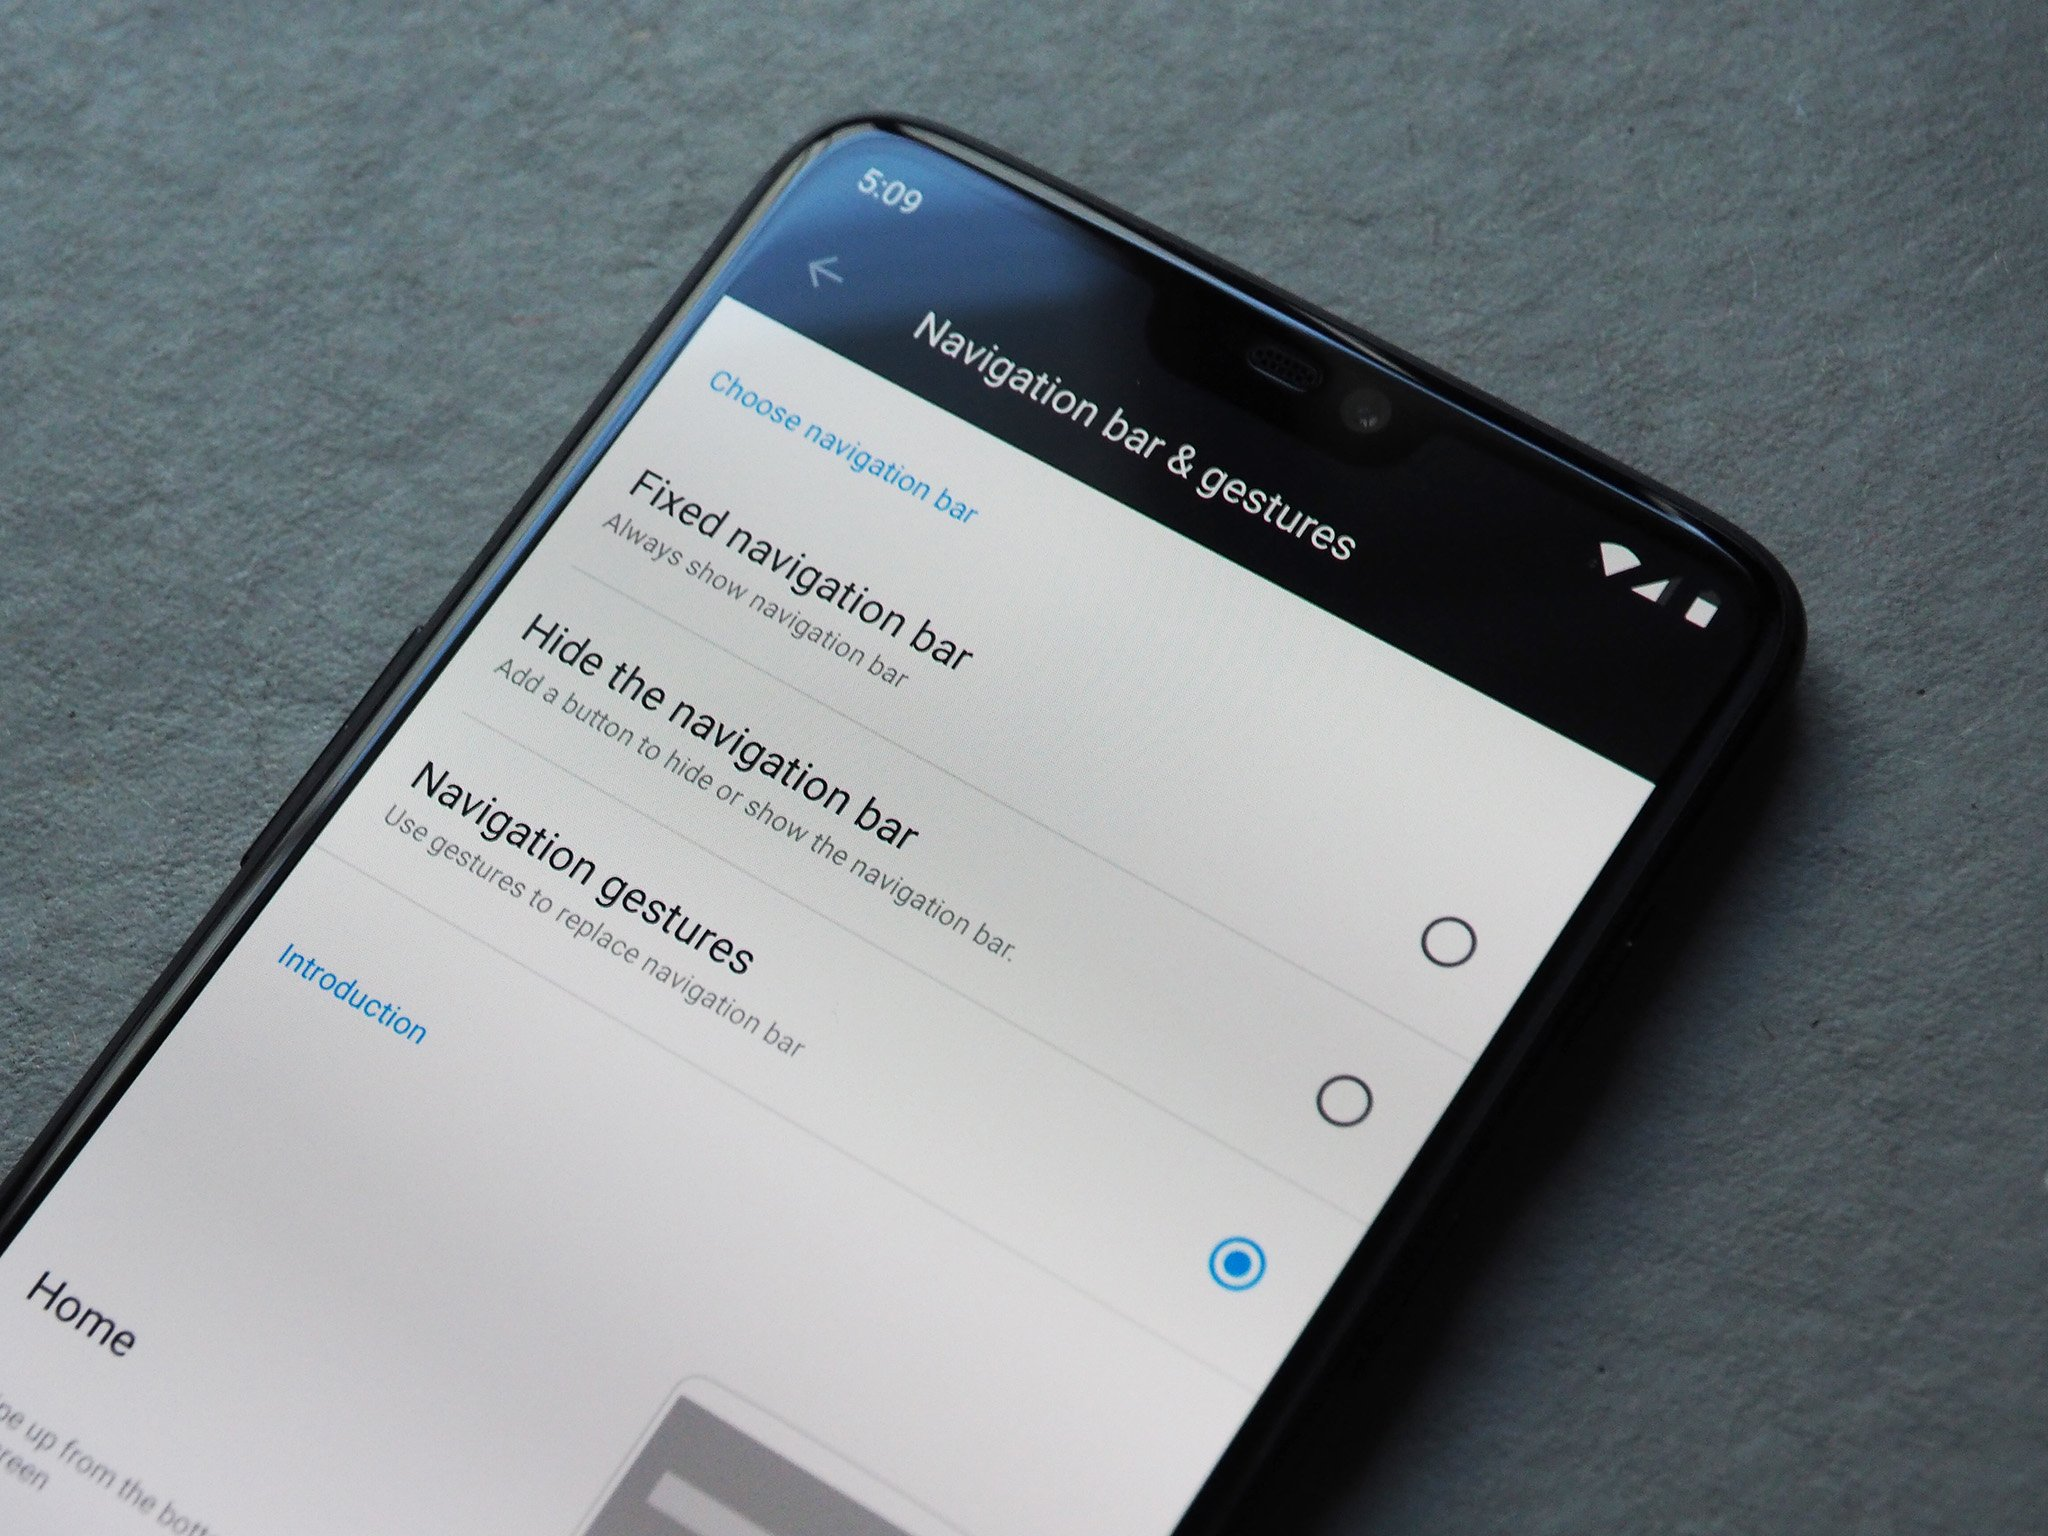 Image result for oneplus 6 android 9 gestures